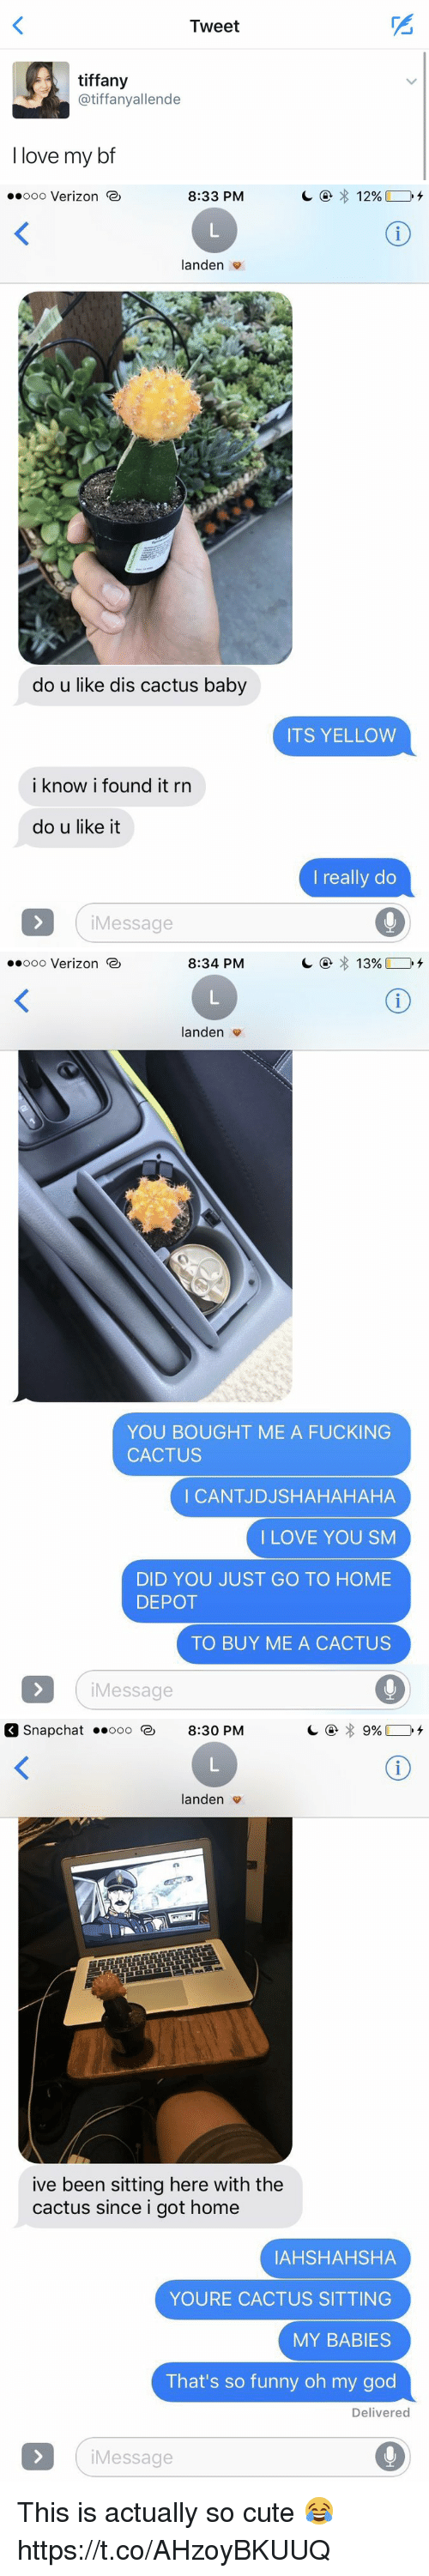 Cute, Fucking, and Funny: Tweet  tiffany  atiffanyallende  I love my bf   8:33 PM  ooooo Verizon  anden  do u like dis cactus baby  i know i found it rn  do u like it  Message  ITS YELLOW  really do   8:34 PM  13%  ooooo Verizon  landen  YOU BOUGHT ME A FUCKING  CACTUS  I CANTJDJSHAHAHAHA  I LOVE YOU SM  DID YOU JUST GO TO HOME  DEPOT  TO BUY ME A CACTUS  Message   Snap Chat Ooo 8:30 PM  anden  ive been sitting here with the  cactus since i got home  IAHSHAHSHA  YOURE CACTUS SITTING  MY BABIES  That's so funny oh my god  Delivered  Message This is actually so cute 😂 https://t.co/AHzoyBKUUQ